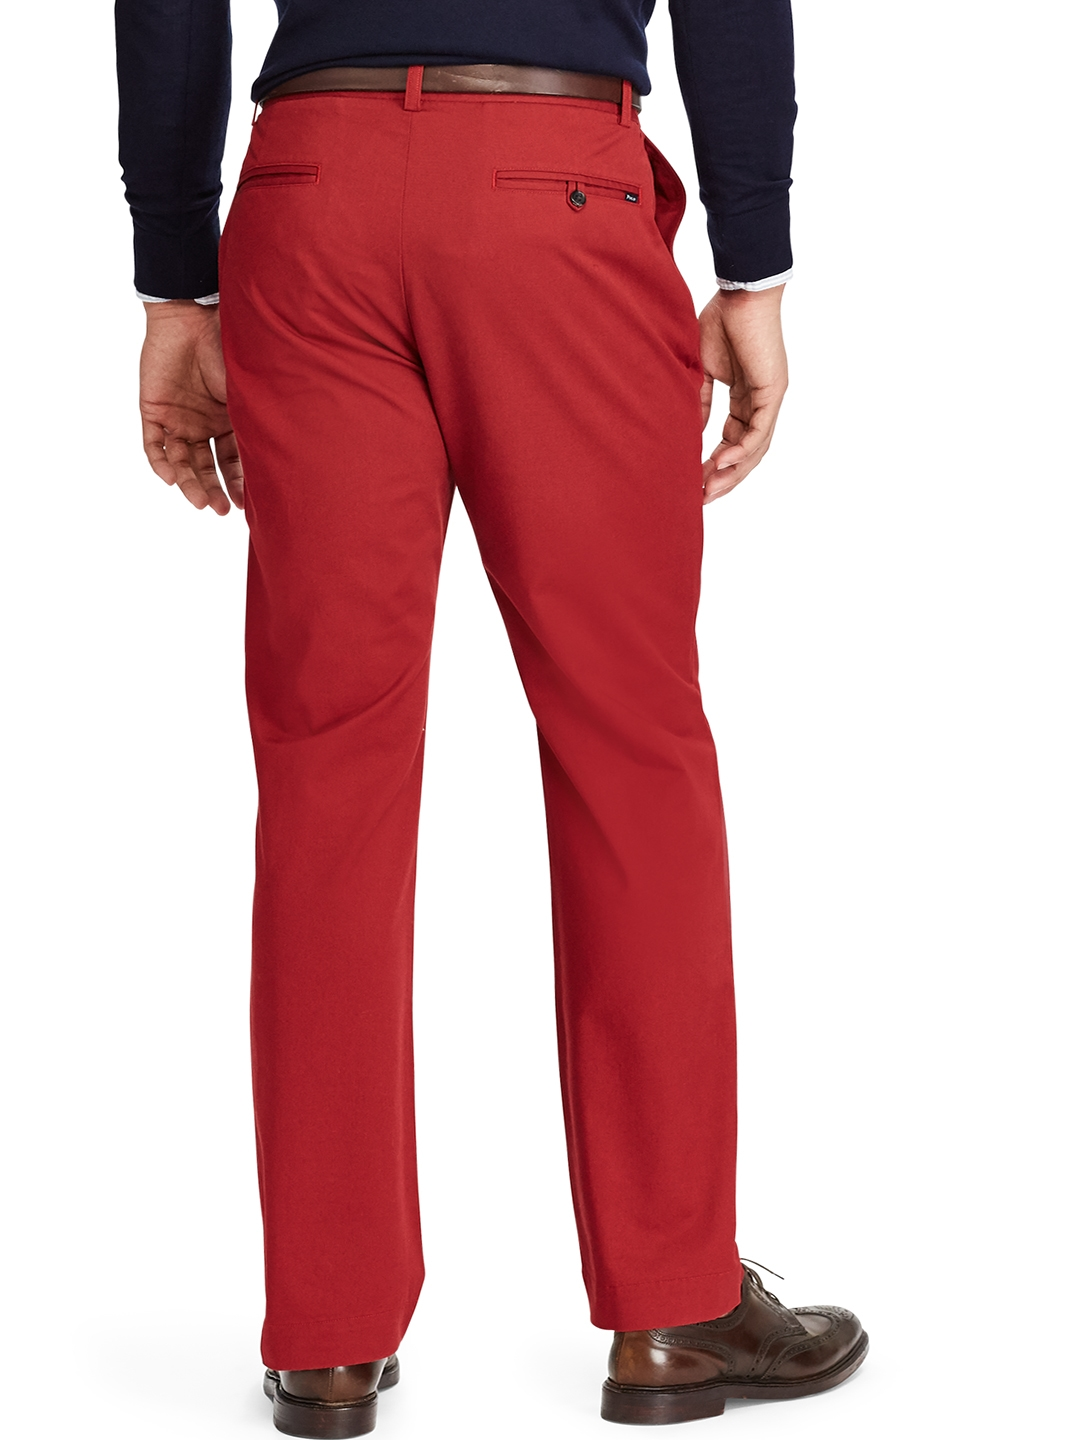 cbc0ca1d90f2 Buy Polo Ralph Lauren Stretch Slim Fit Cotton Chinos - Trousers for ...